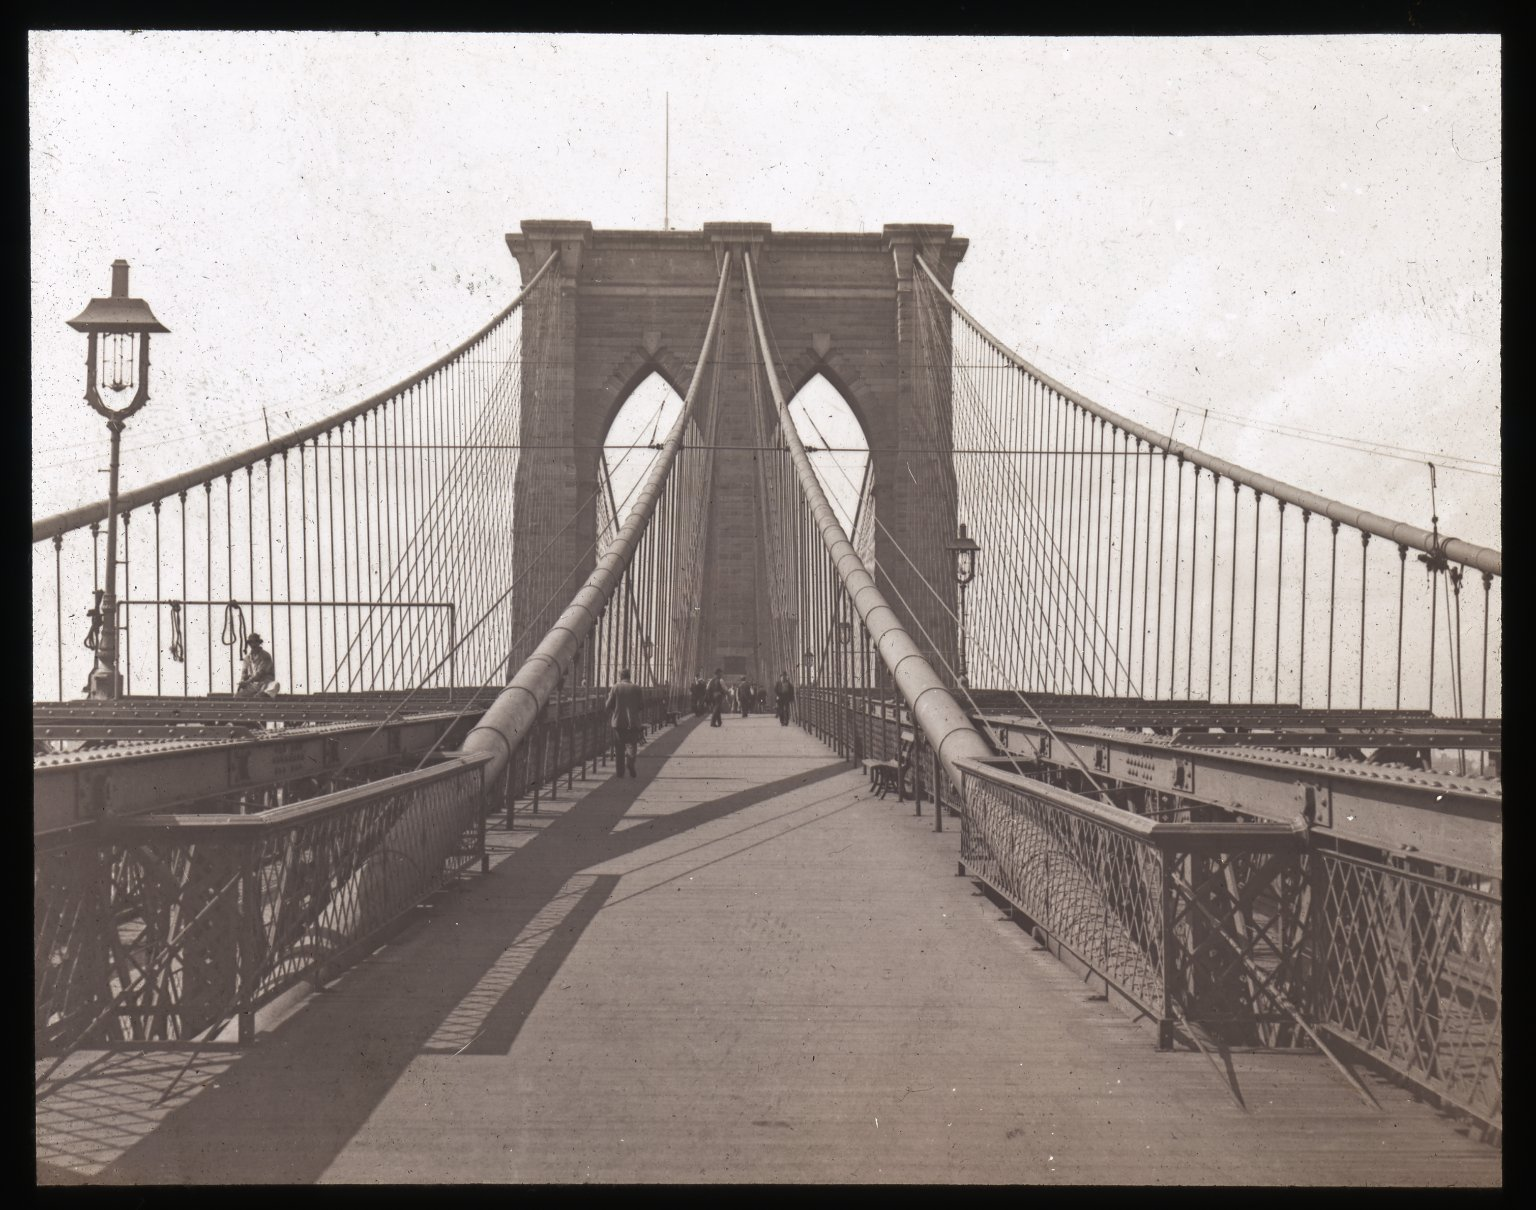 Brooklyn tower; from foot way. Collection- Lantern Slide Collection Views- U.S., Brooklyn Brooklyn Bridge 1896-1900